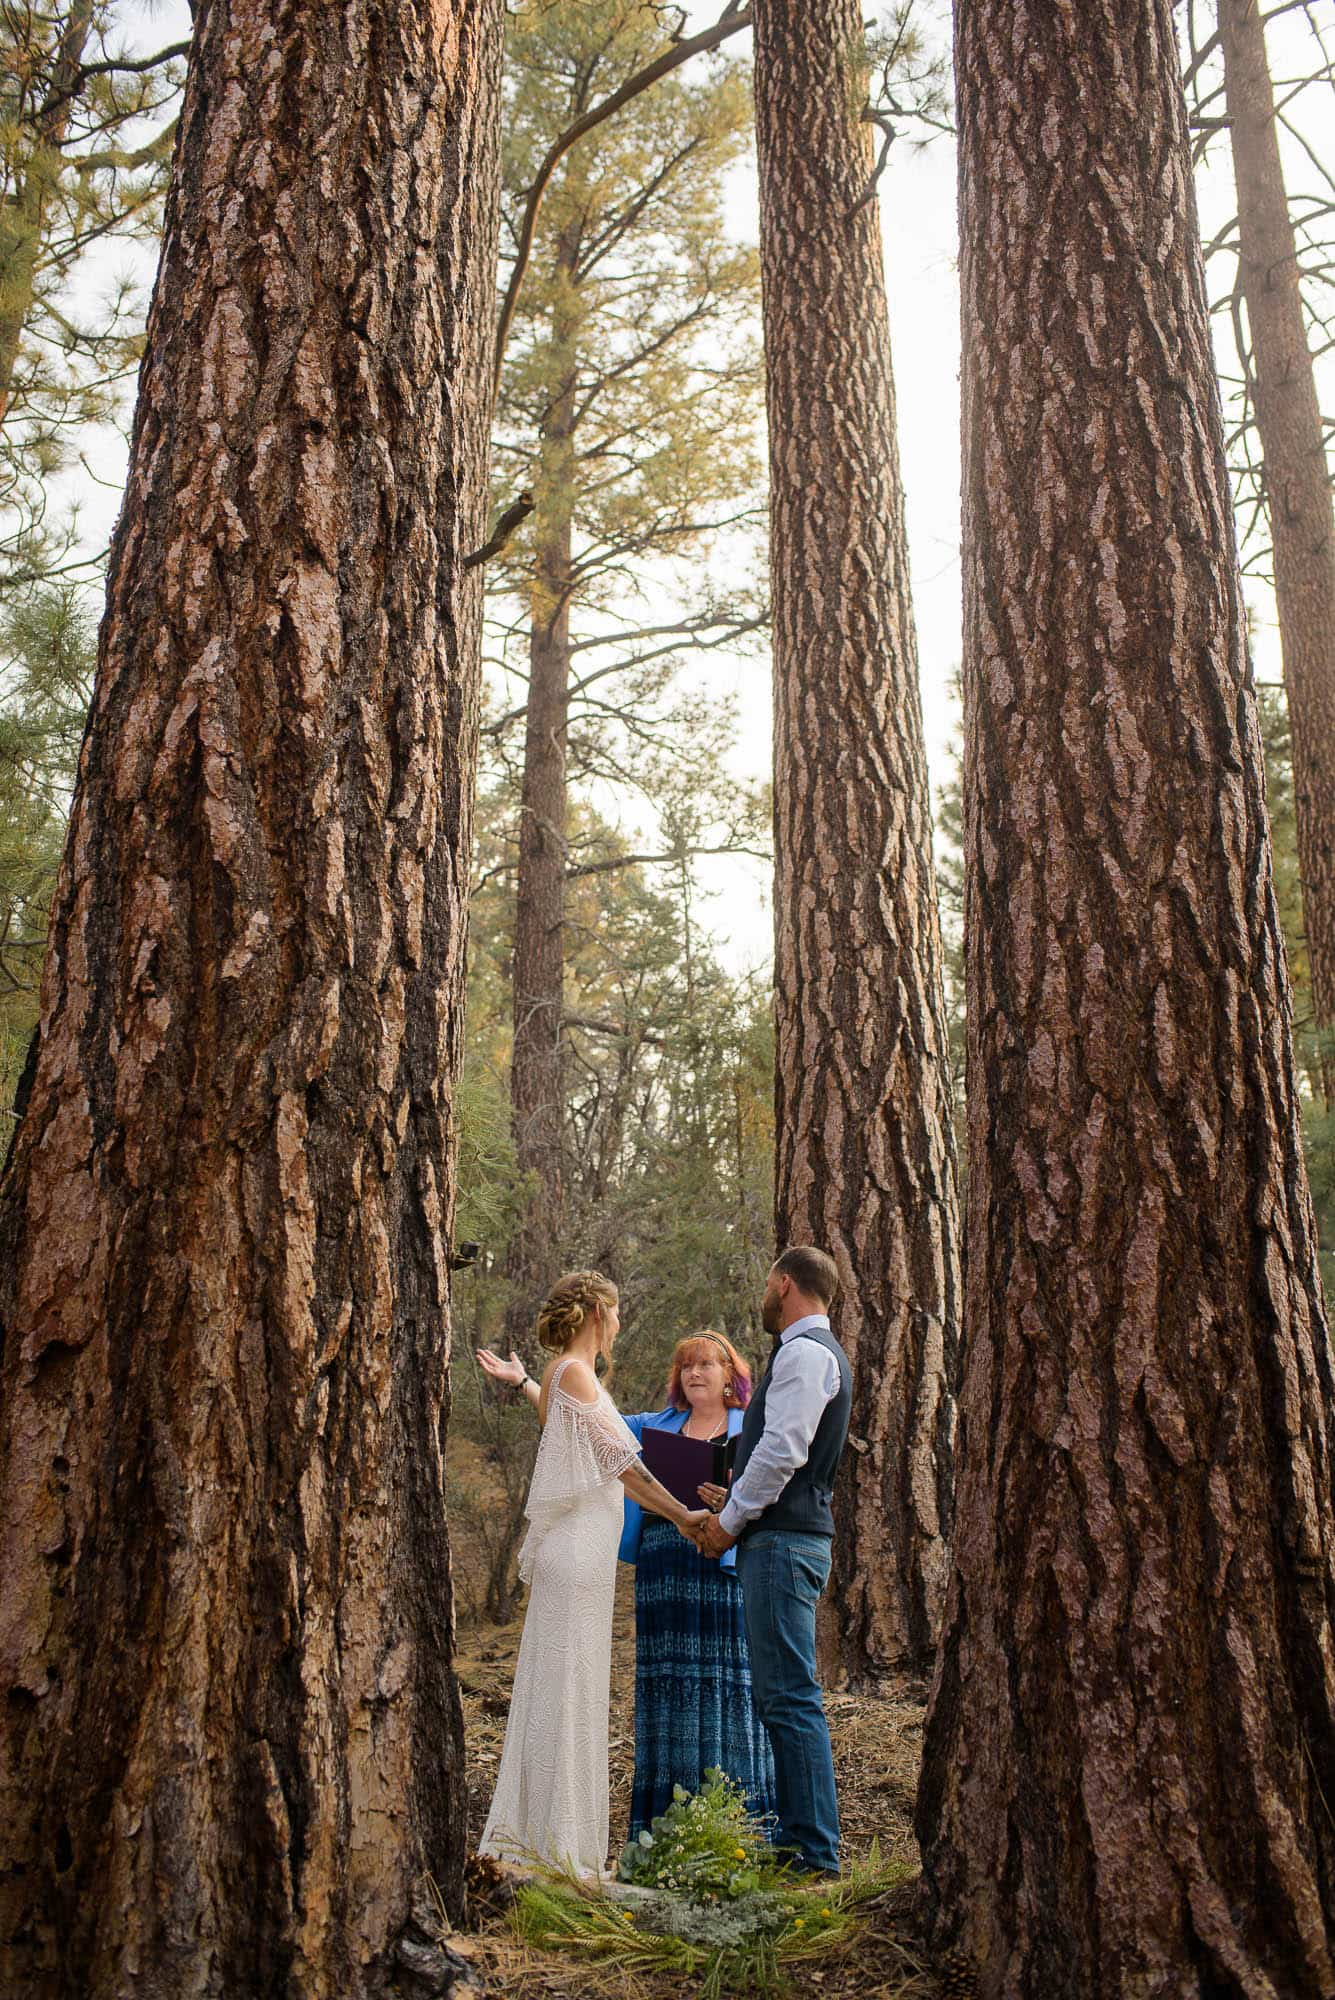 013_Alan_and_Heidi_Big_Bear_Elopement_Holly_Sean